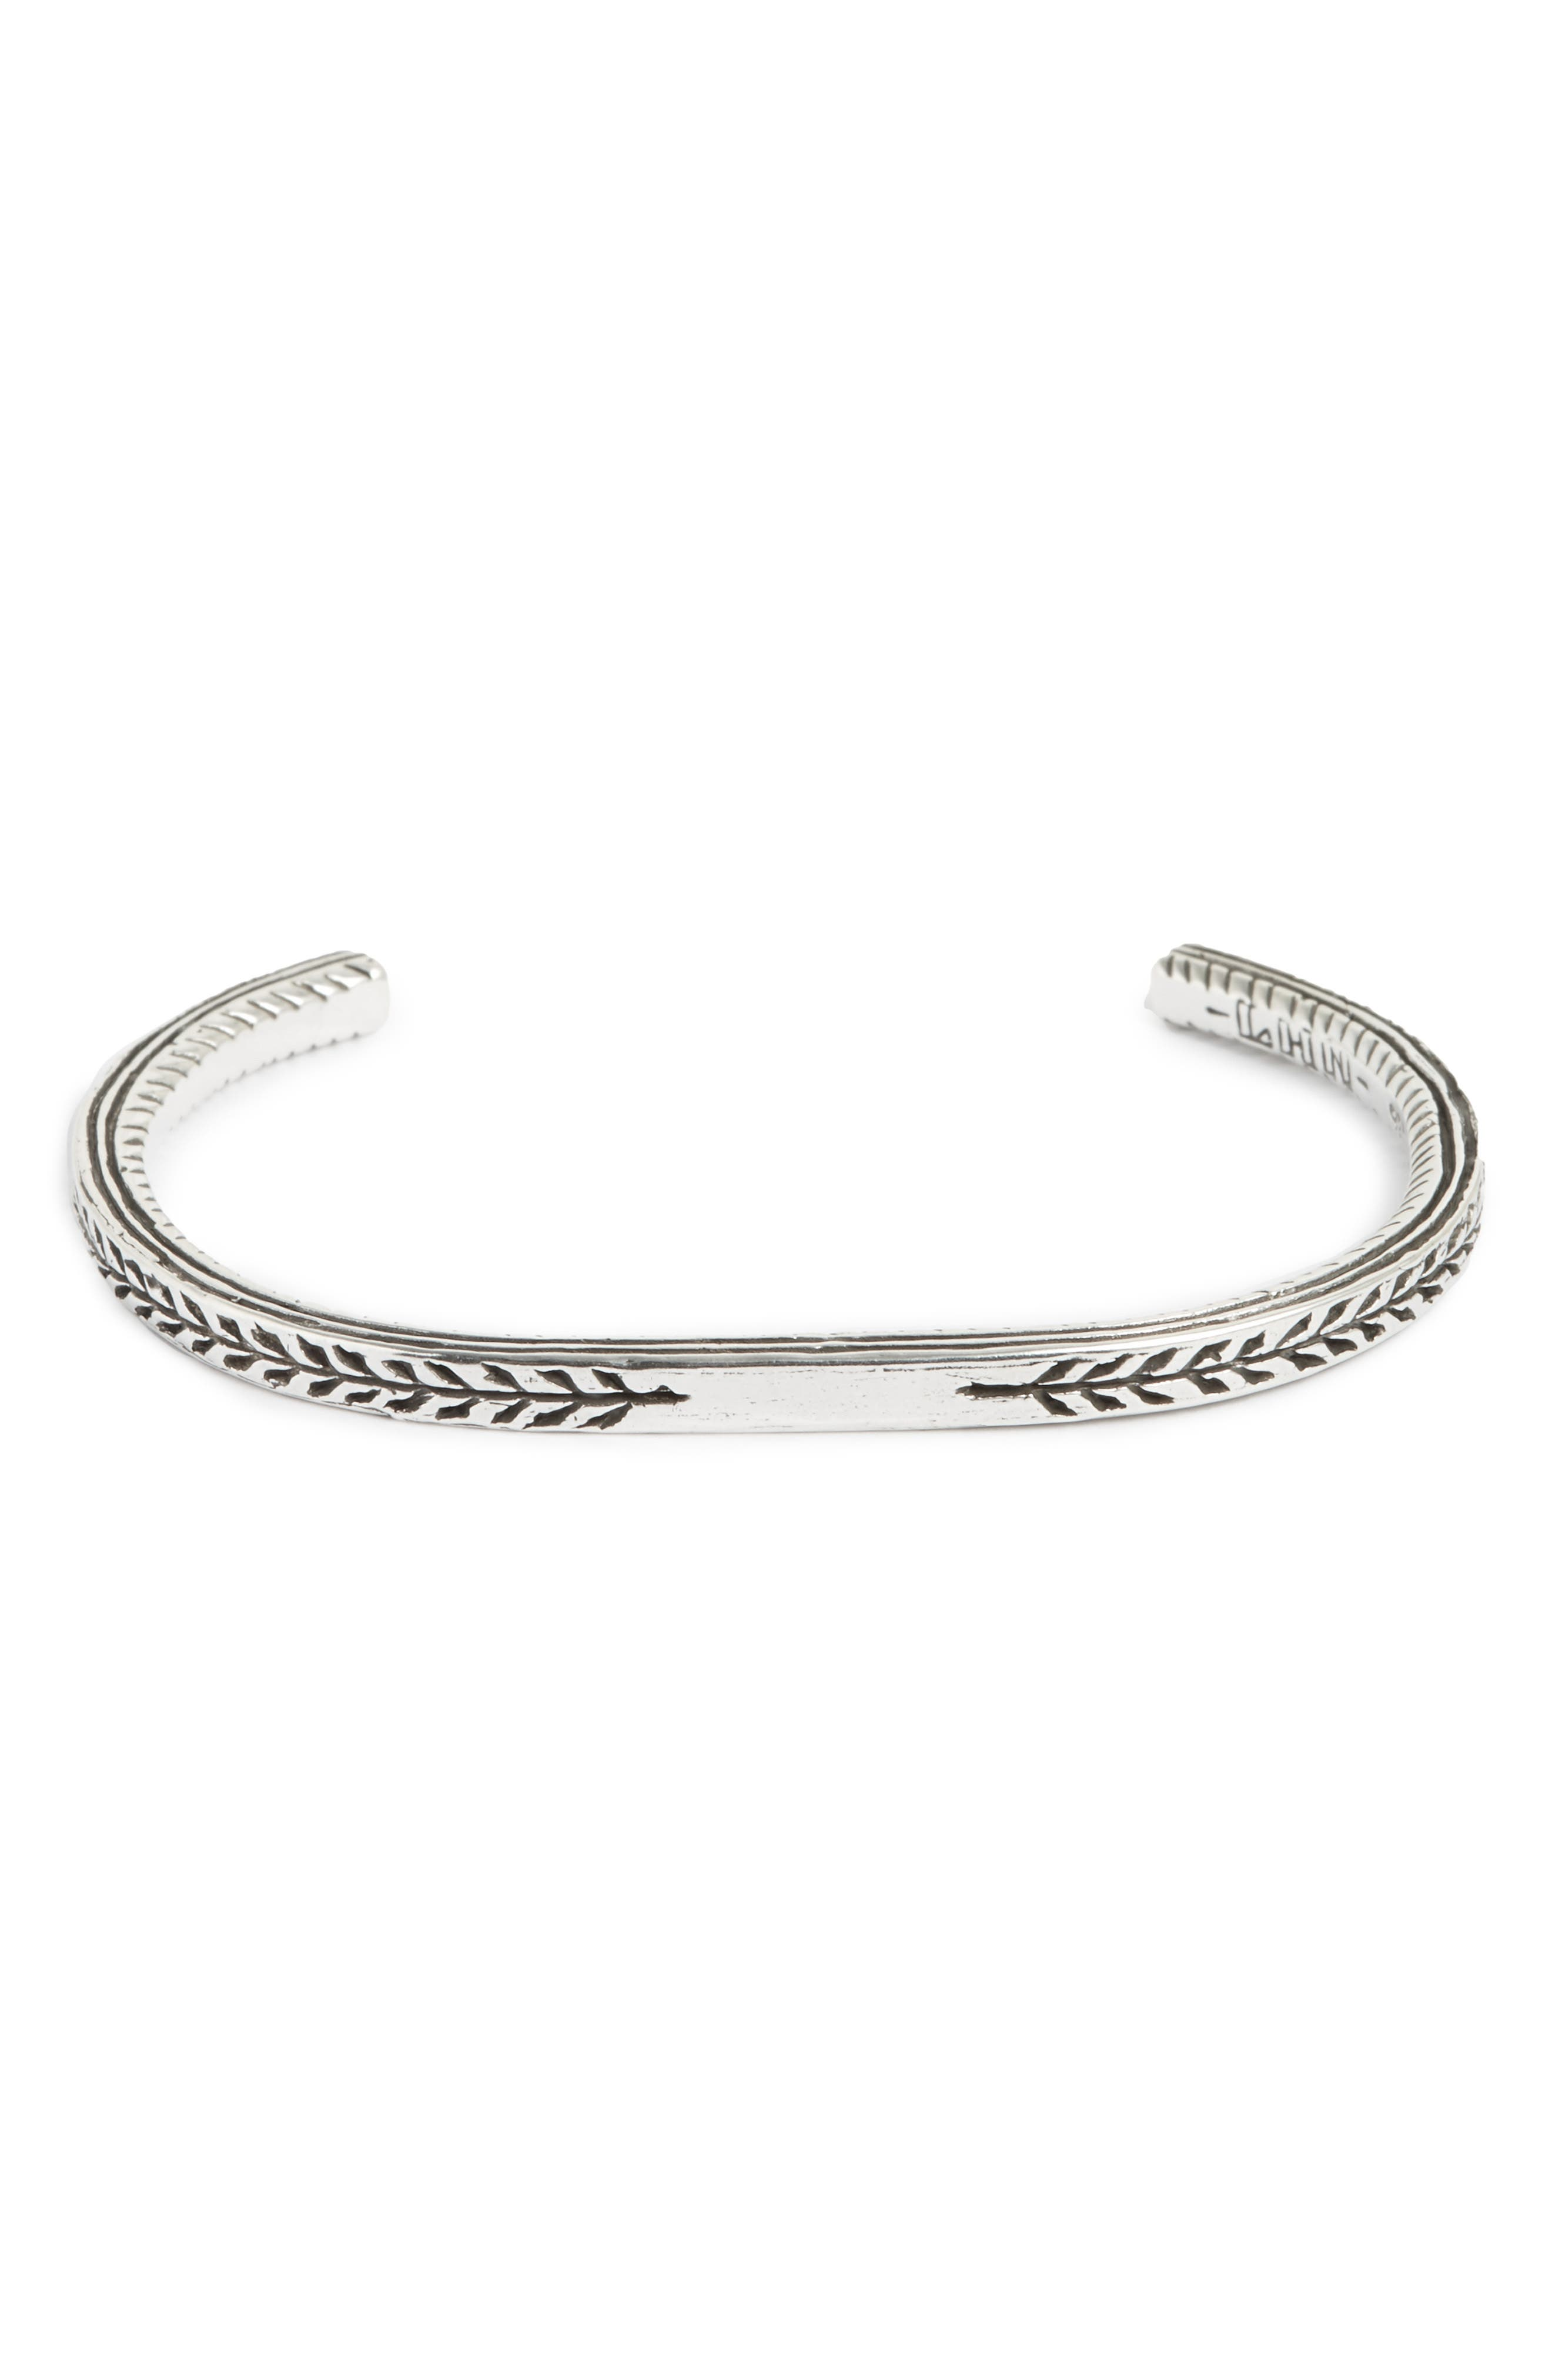 Pantheon Sterling Silver Cuff Bracelet,                             Main thumbnail 1, color,                             040